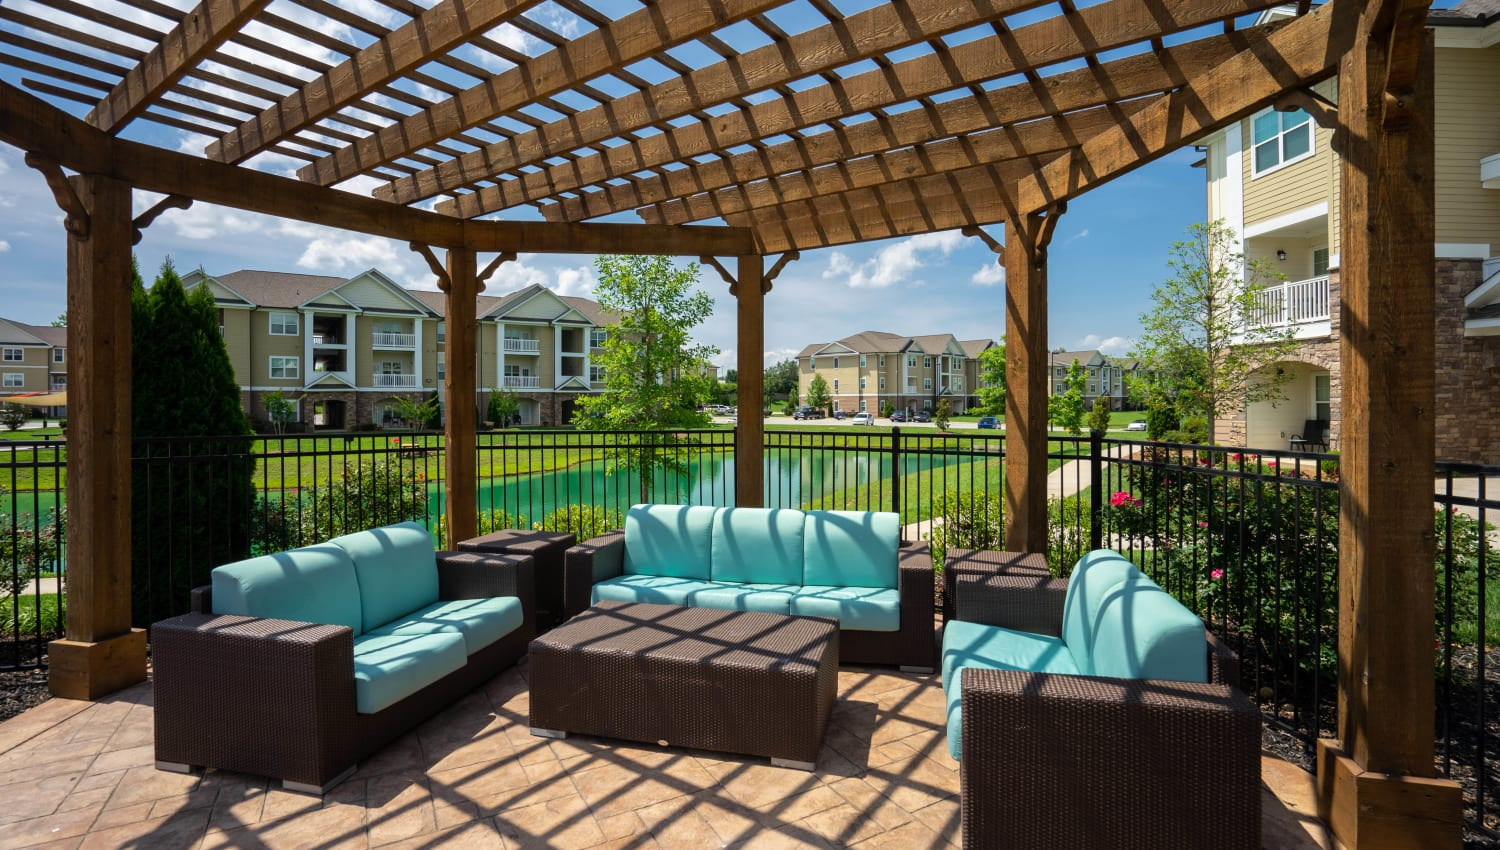 Pergola over one of the lounge areas at Legends at White Oak in Ooltewah, Tennessee